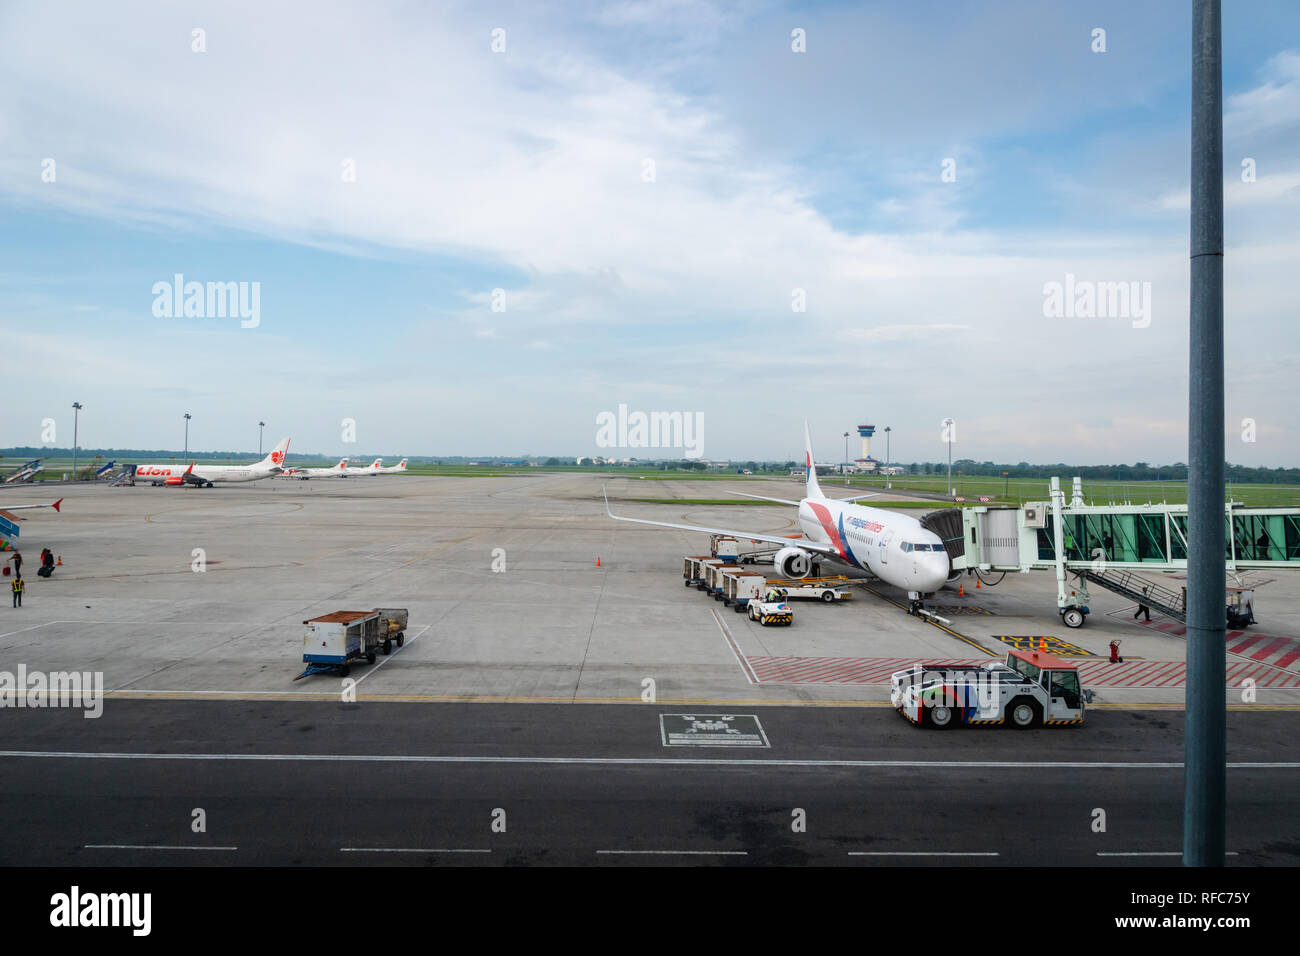 Medan, Indonesia - January 2018: aircrafts on the runway of Medan Kualanamu airport, Indonesia.   Kualanamu is the third largest airport in Indonesia. - Stock Image